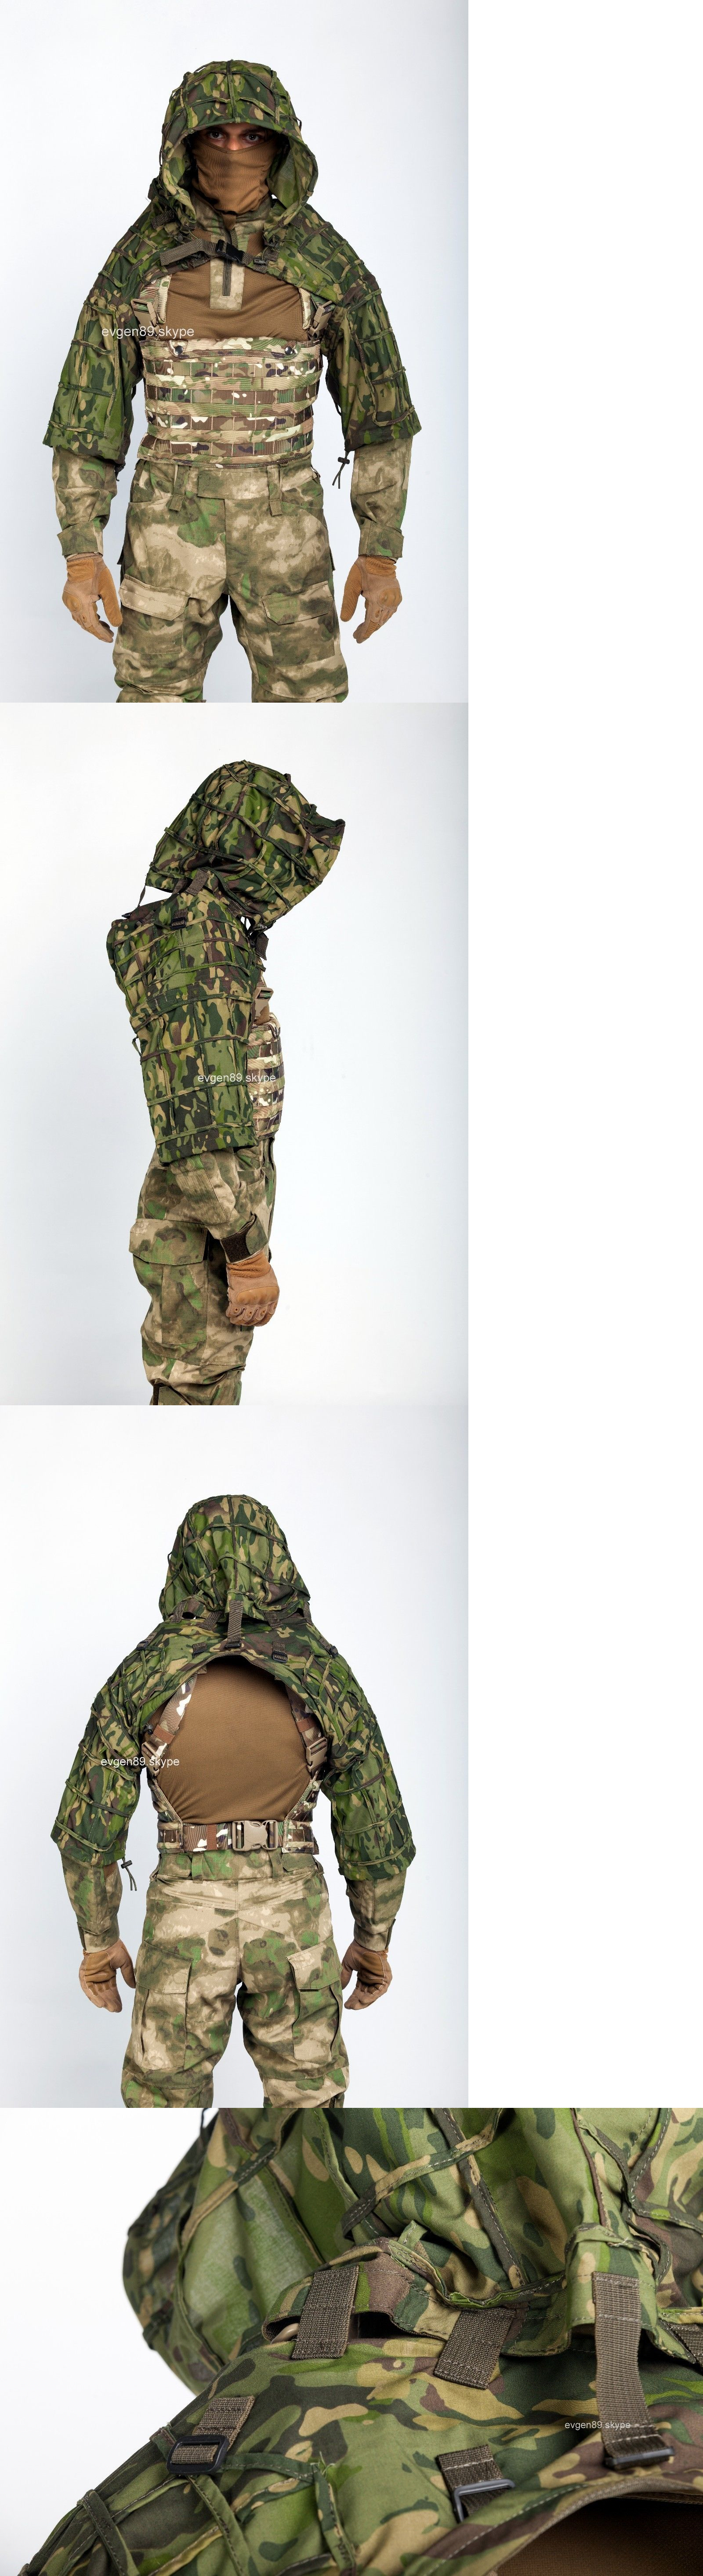 1690957fbb2d0 Ghillie Suits 177870: Disguise Sniper Coat Viper Hood Russian Spetsnaz  Multicam Tropic -> BUY IT NOW ONLY: $122.9 on eBay!